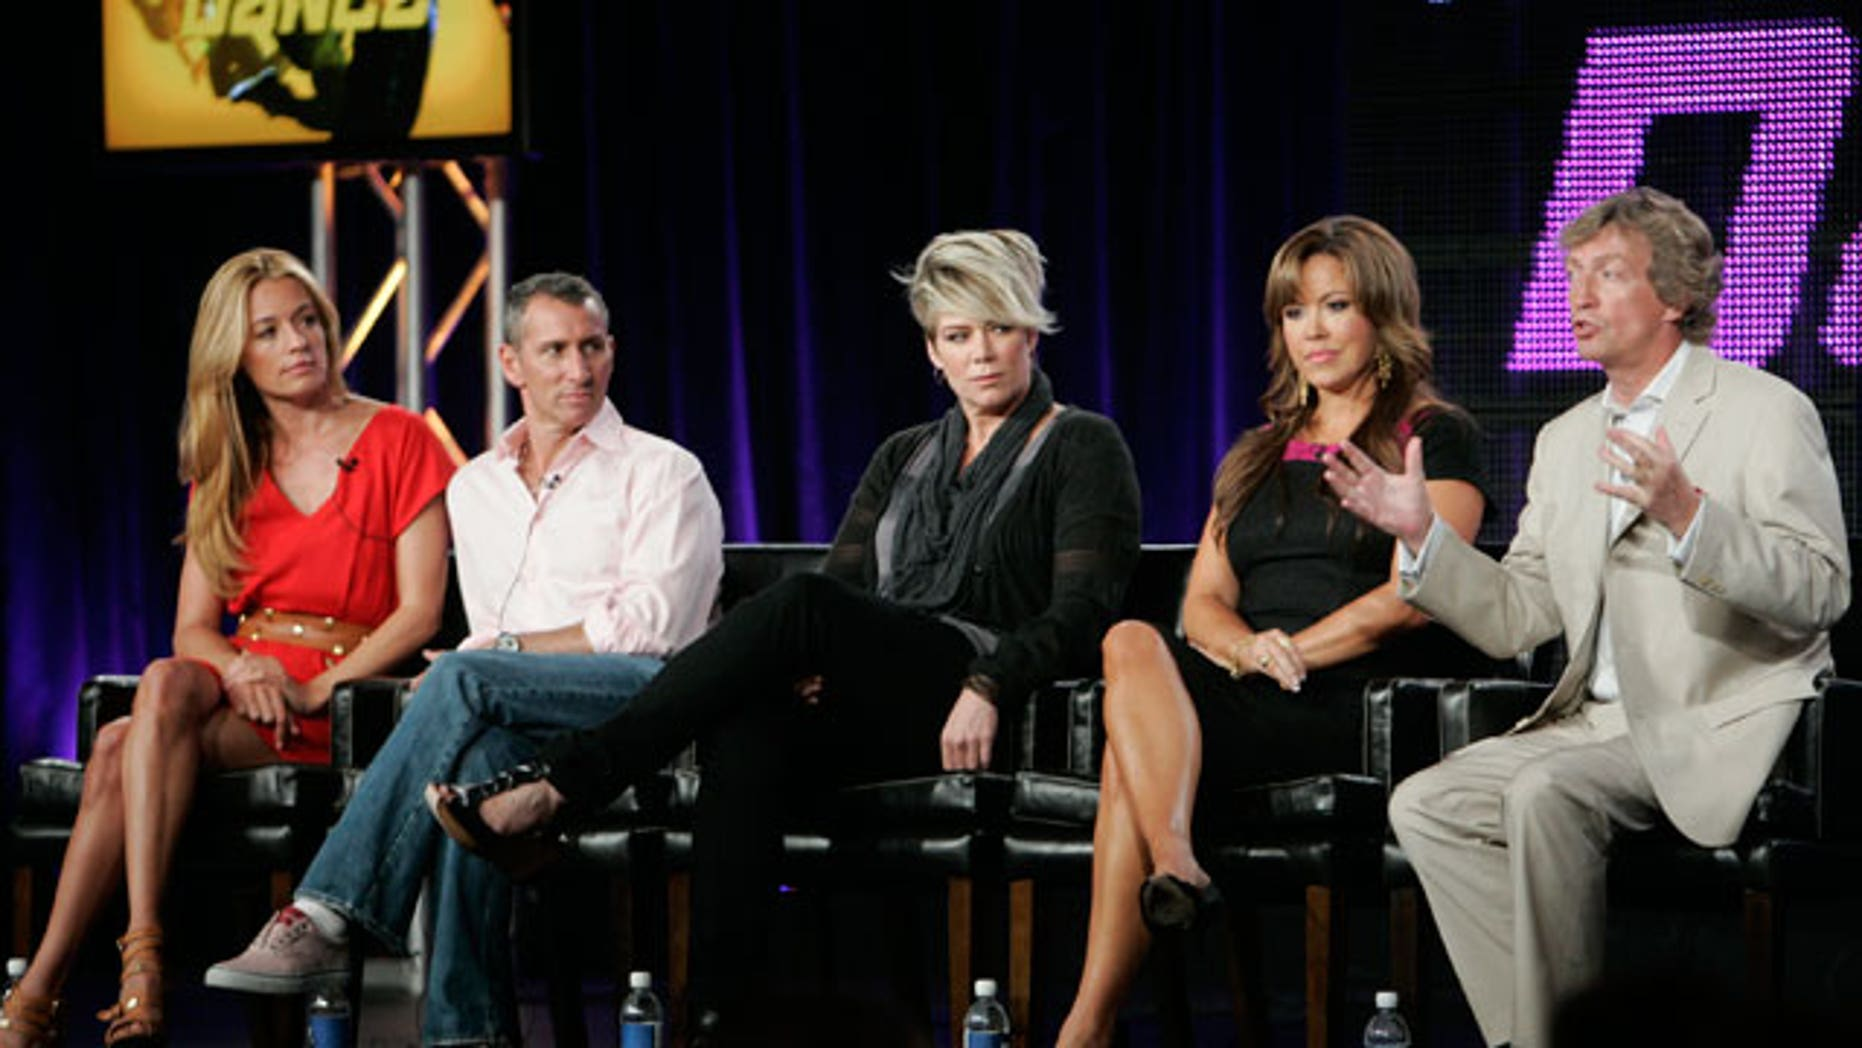 """Aug. 6: The host, judges and executiver producer of """"So You Think You Can Dance"""" (L-R) host Cat Deeley, guest judges Adam Shankman, Mia Michaels, judge Mary Murphy and executive producer and judge Nigel Lythgoe."""